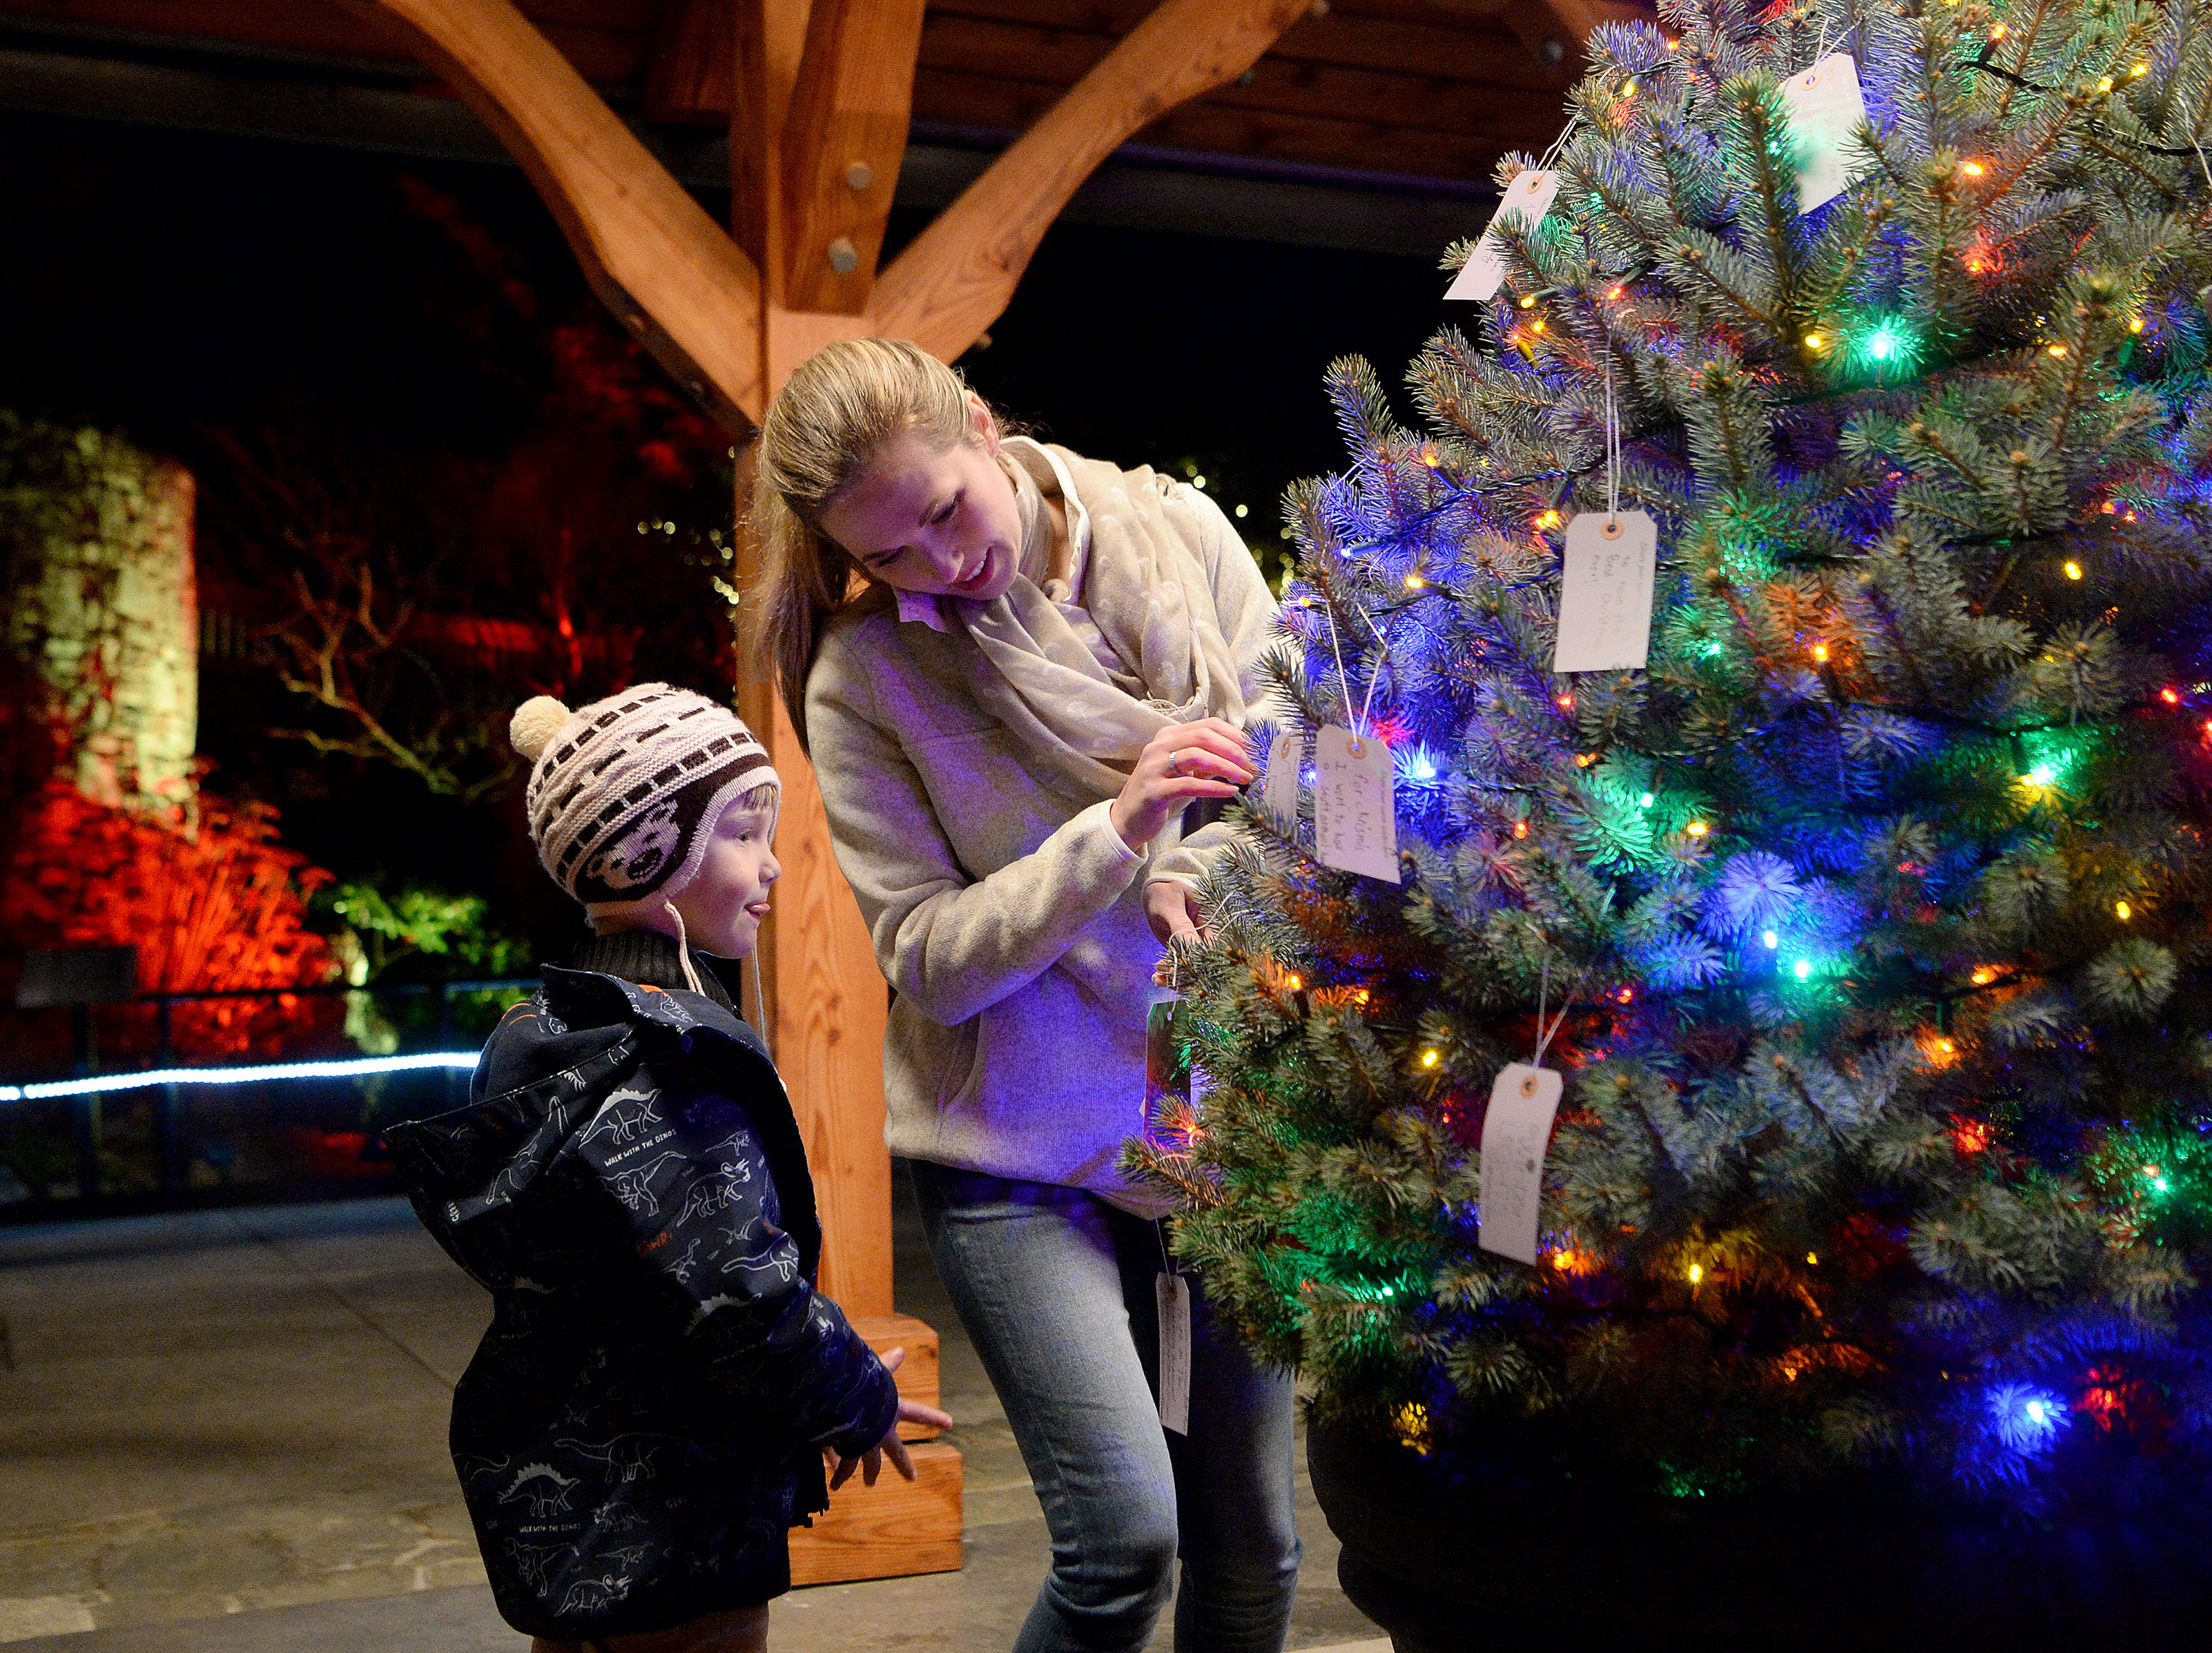 Jack Gibson, 5, helps his mom, Candes, decide where to hang her wish on a Wishing Tree during the Winter Lights show at the North Carolina Arboretum on Nov. 16, 2018. The show runs nightly through the end of the year.